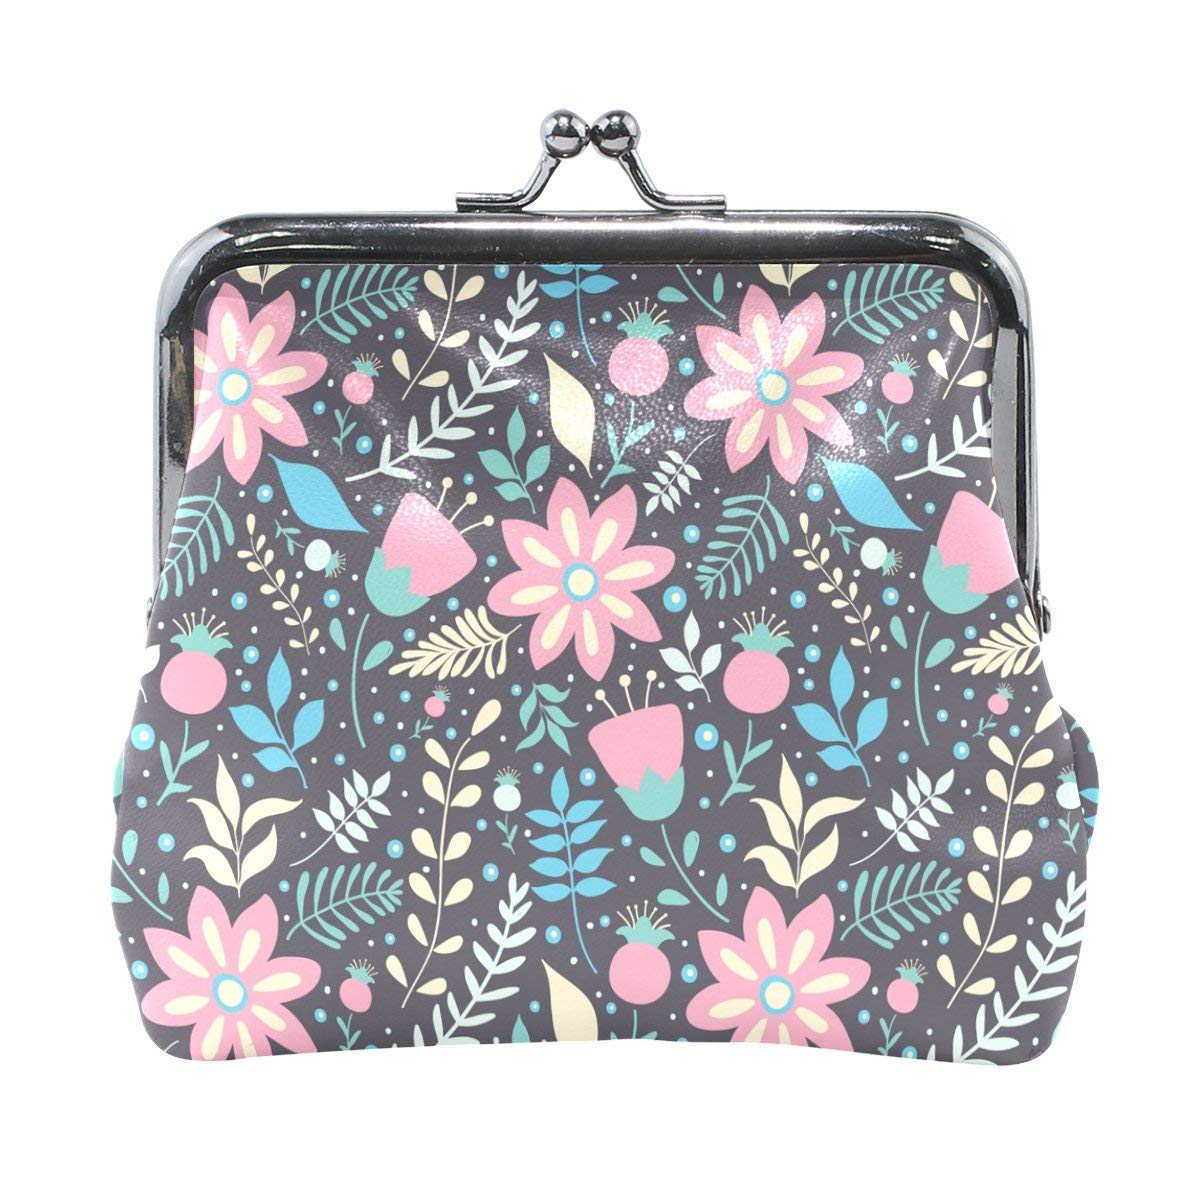 Flower Pattern High Grade Leather Coin Purse Snap Closure Clutch Coin Wallet